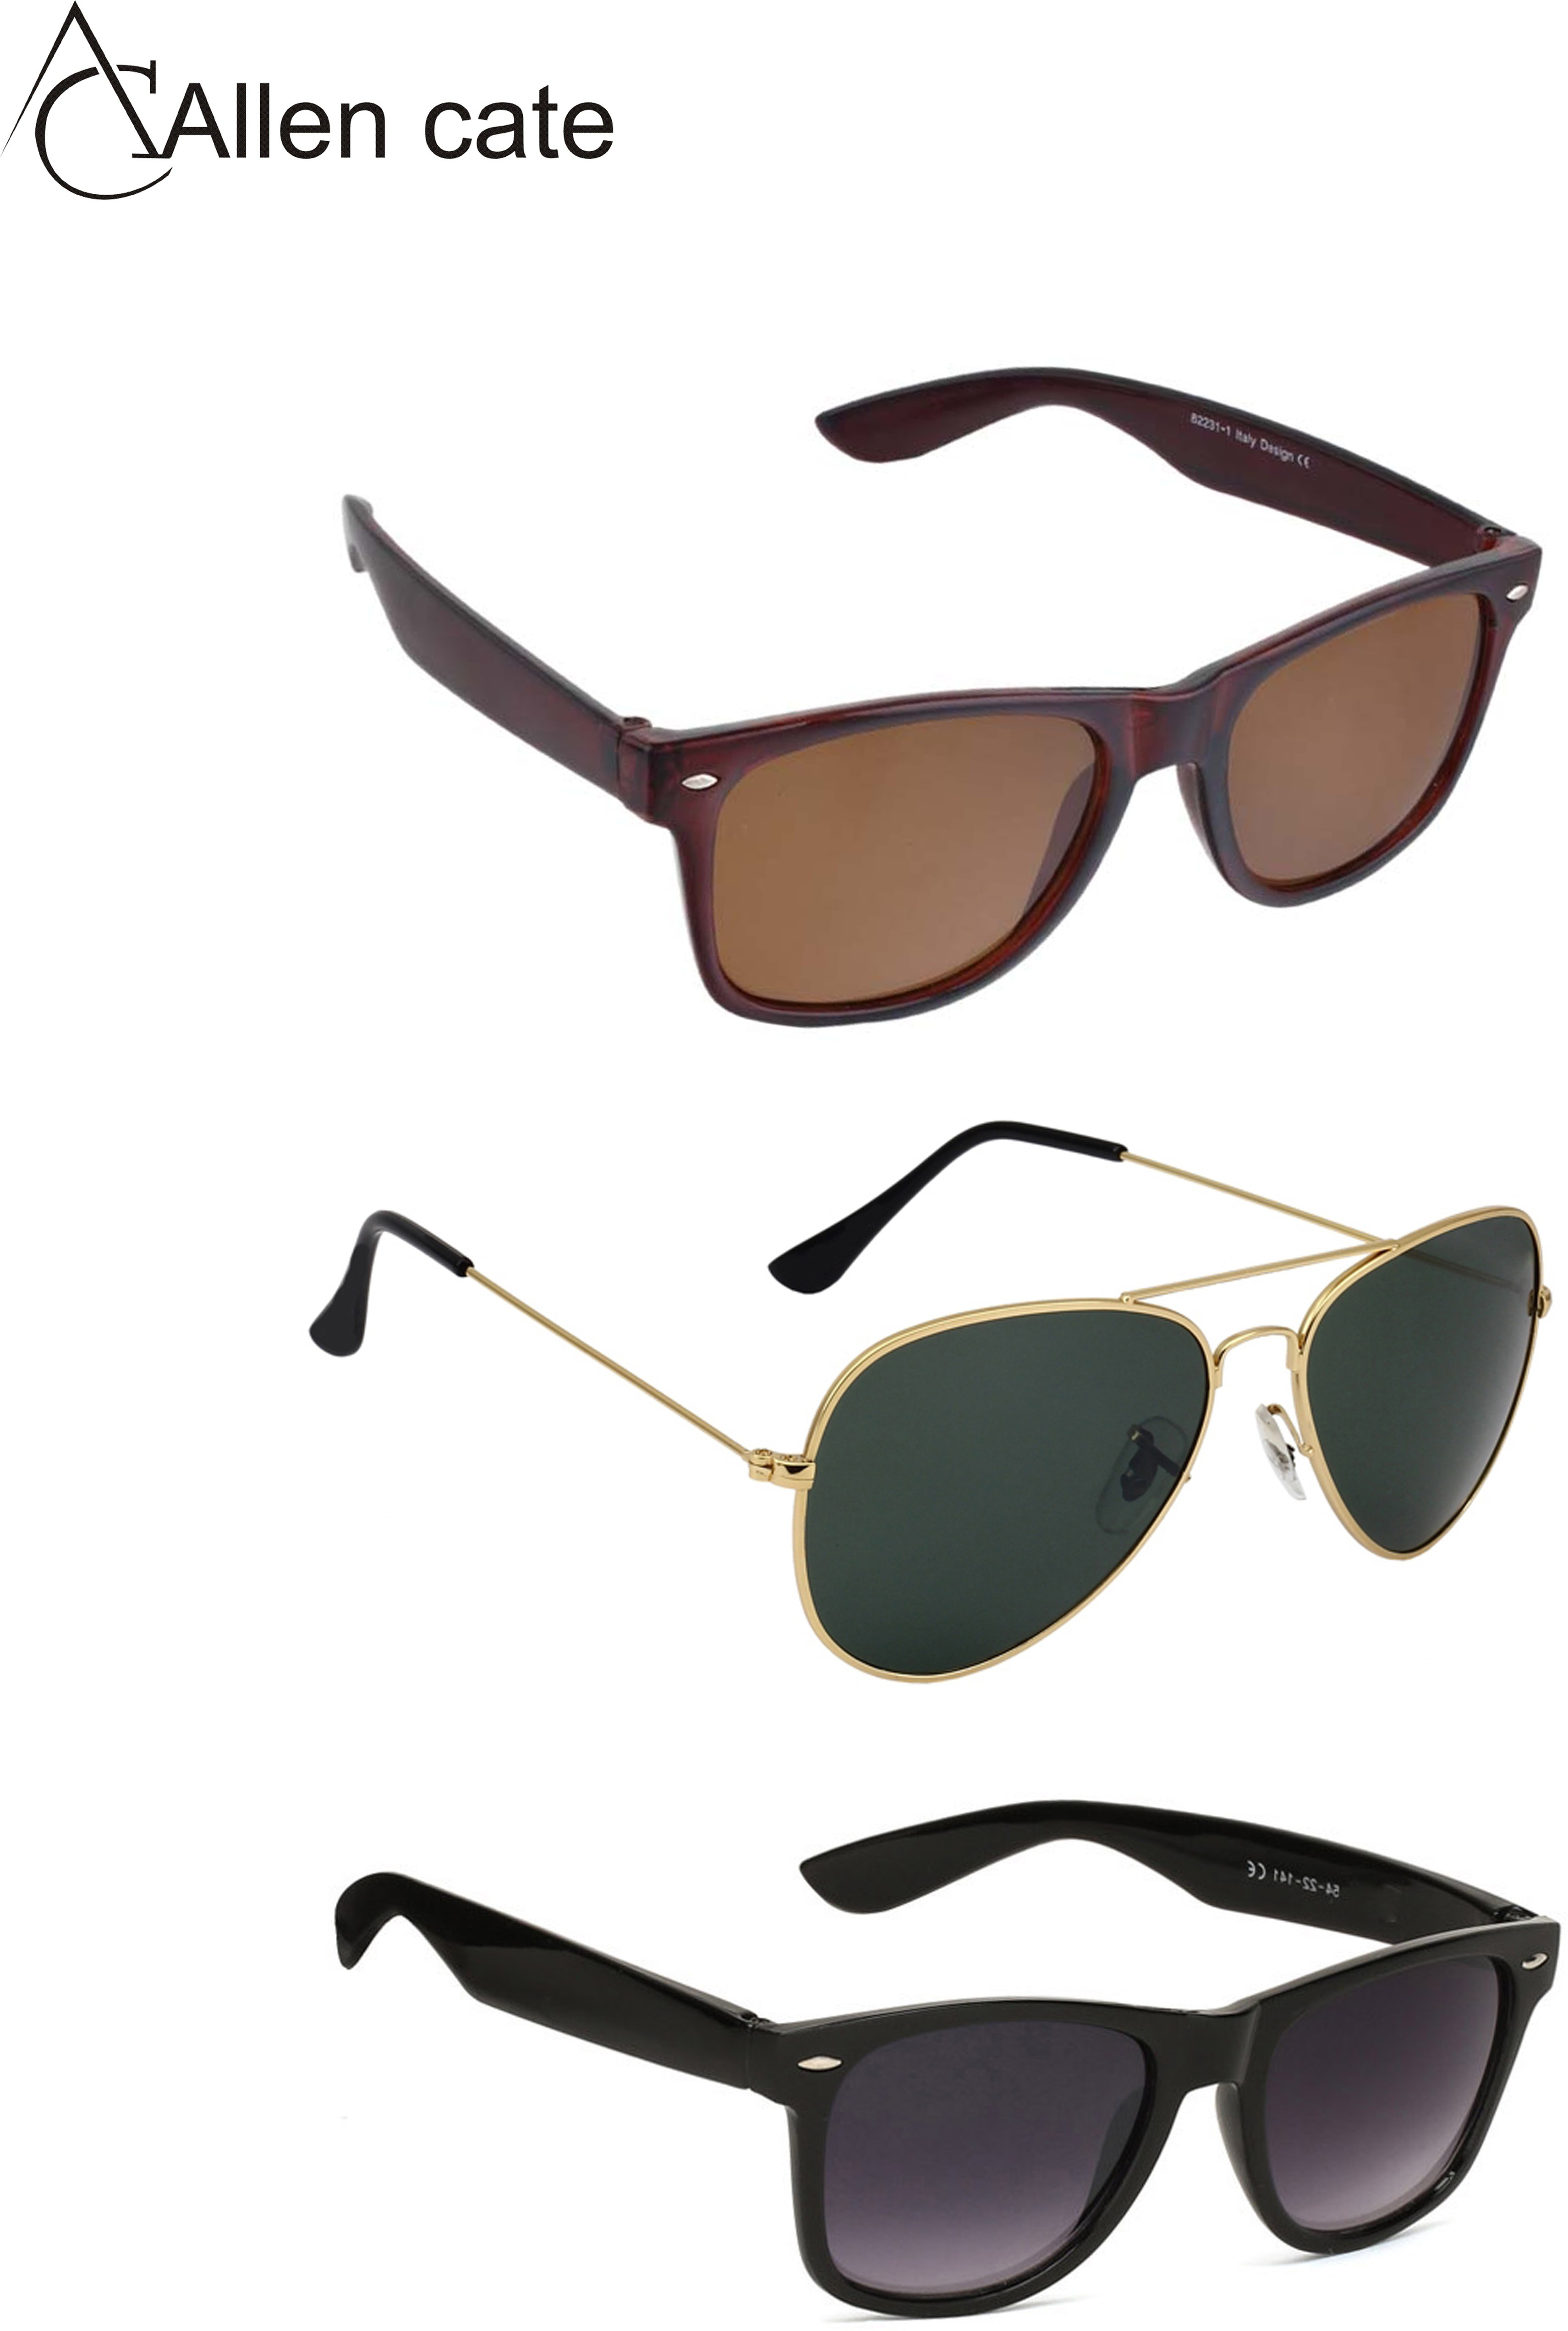 Deals - Delhi - Under Rs.699 <br> Sunglasses<br> Category - sunglasses<br> Business - Flipkart.com